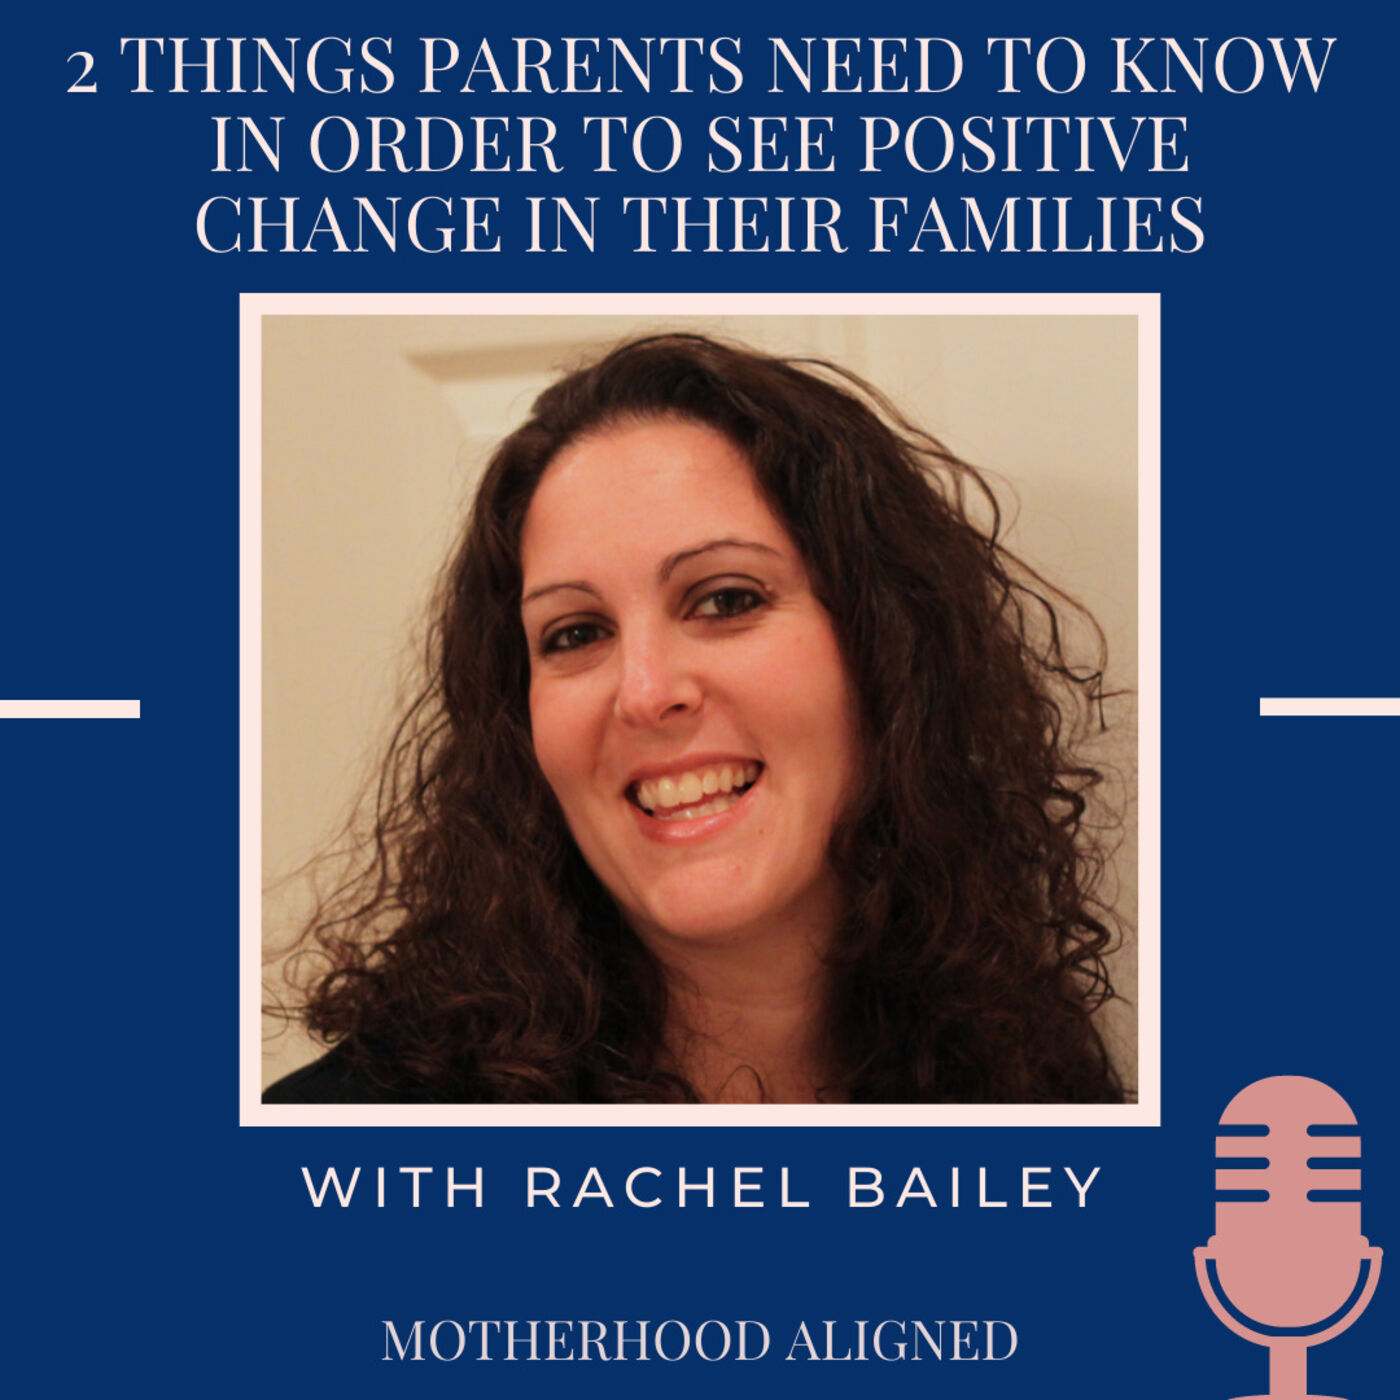 2 Things Parents Need to Know in Order to See Positive Change in Their Families with Rachel Bailey